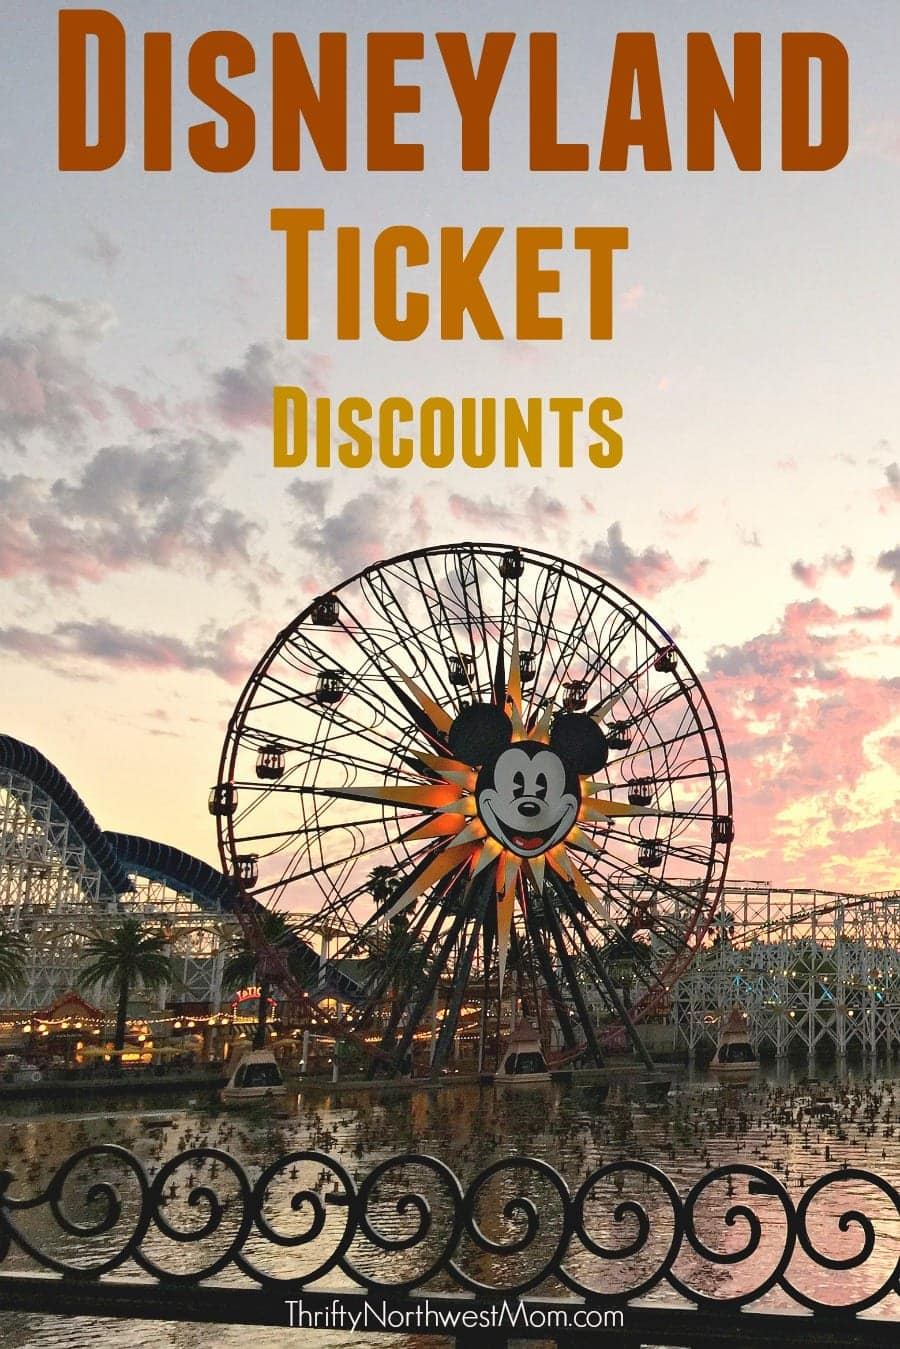 Disneyland coupons discounts